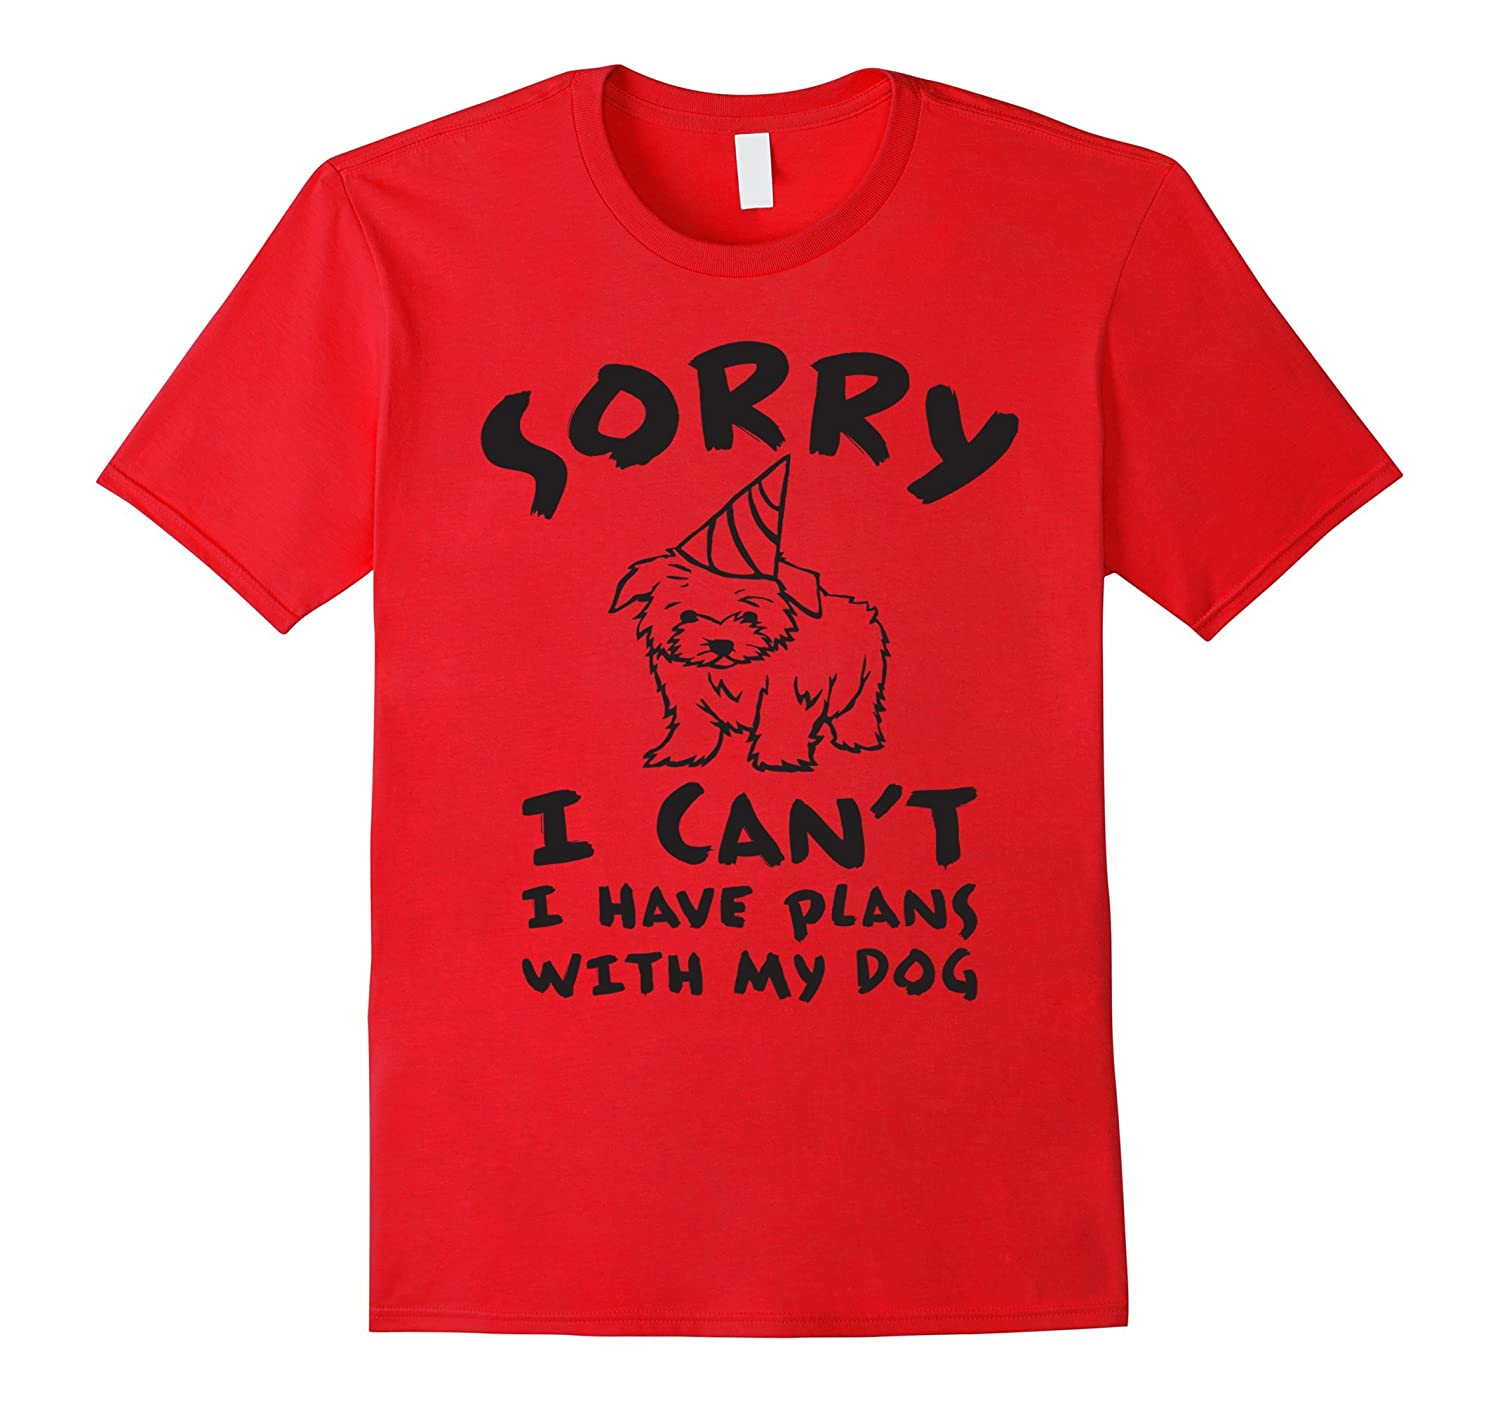 Cute Dog T-Shirt - Sorry I Cant I Have plans With My Dog-Vaci